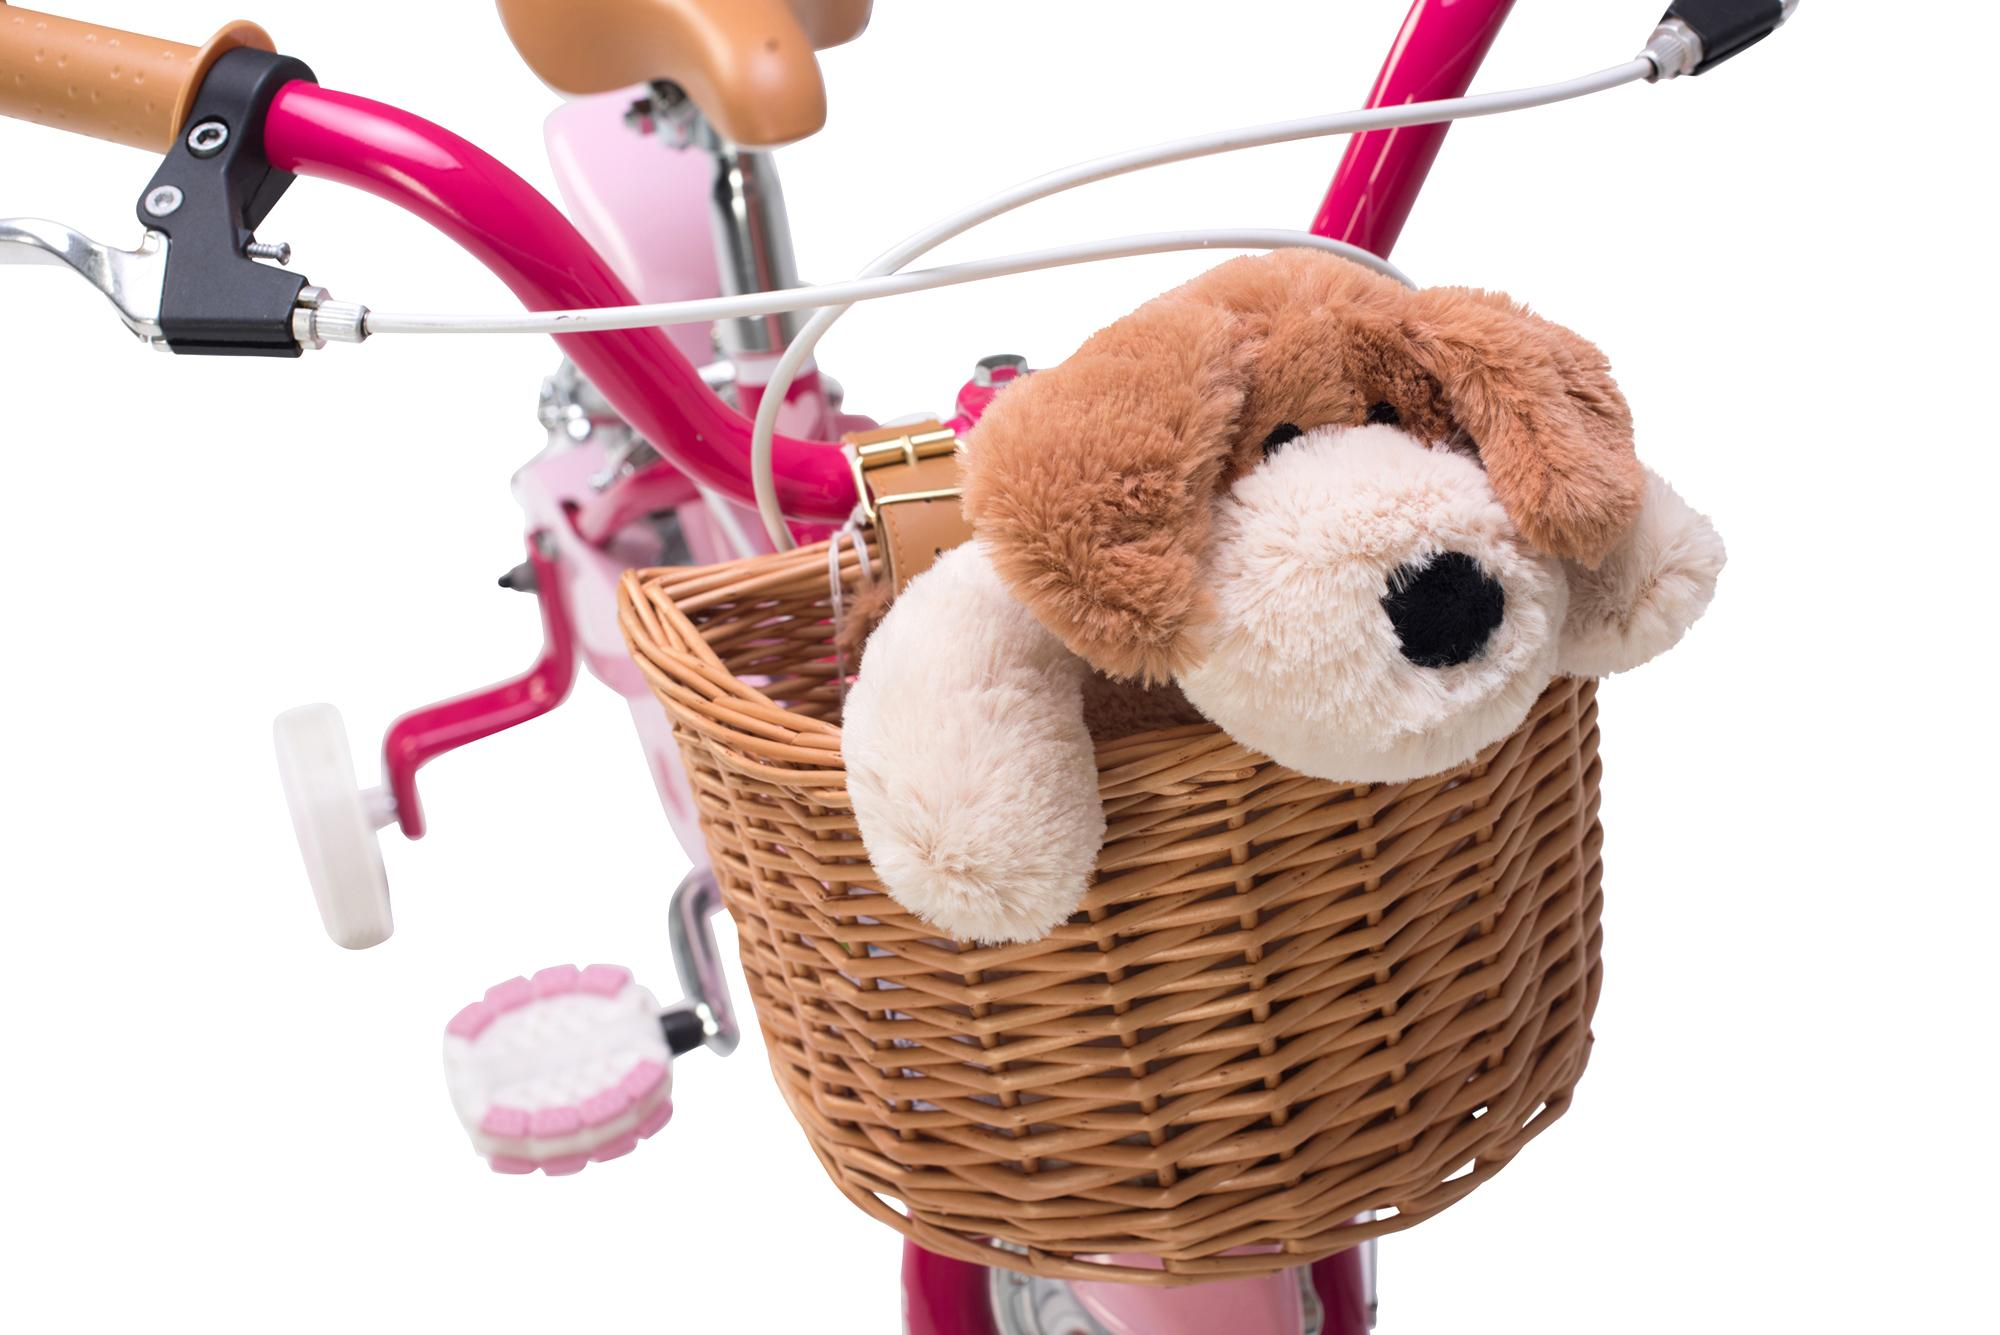 view of the basket on the Raleigh Molli 12 inch kids girls bike with stabilisers